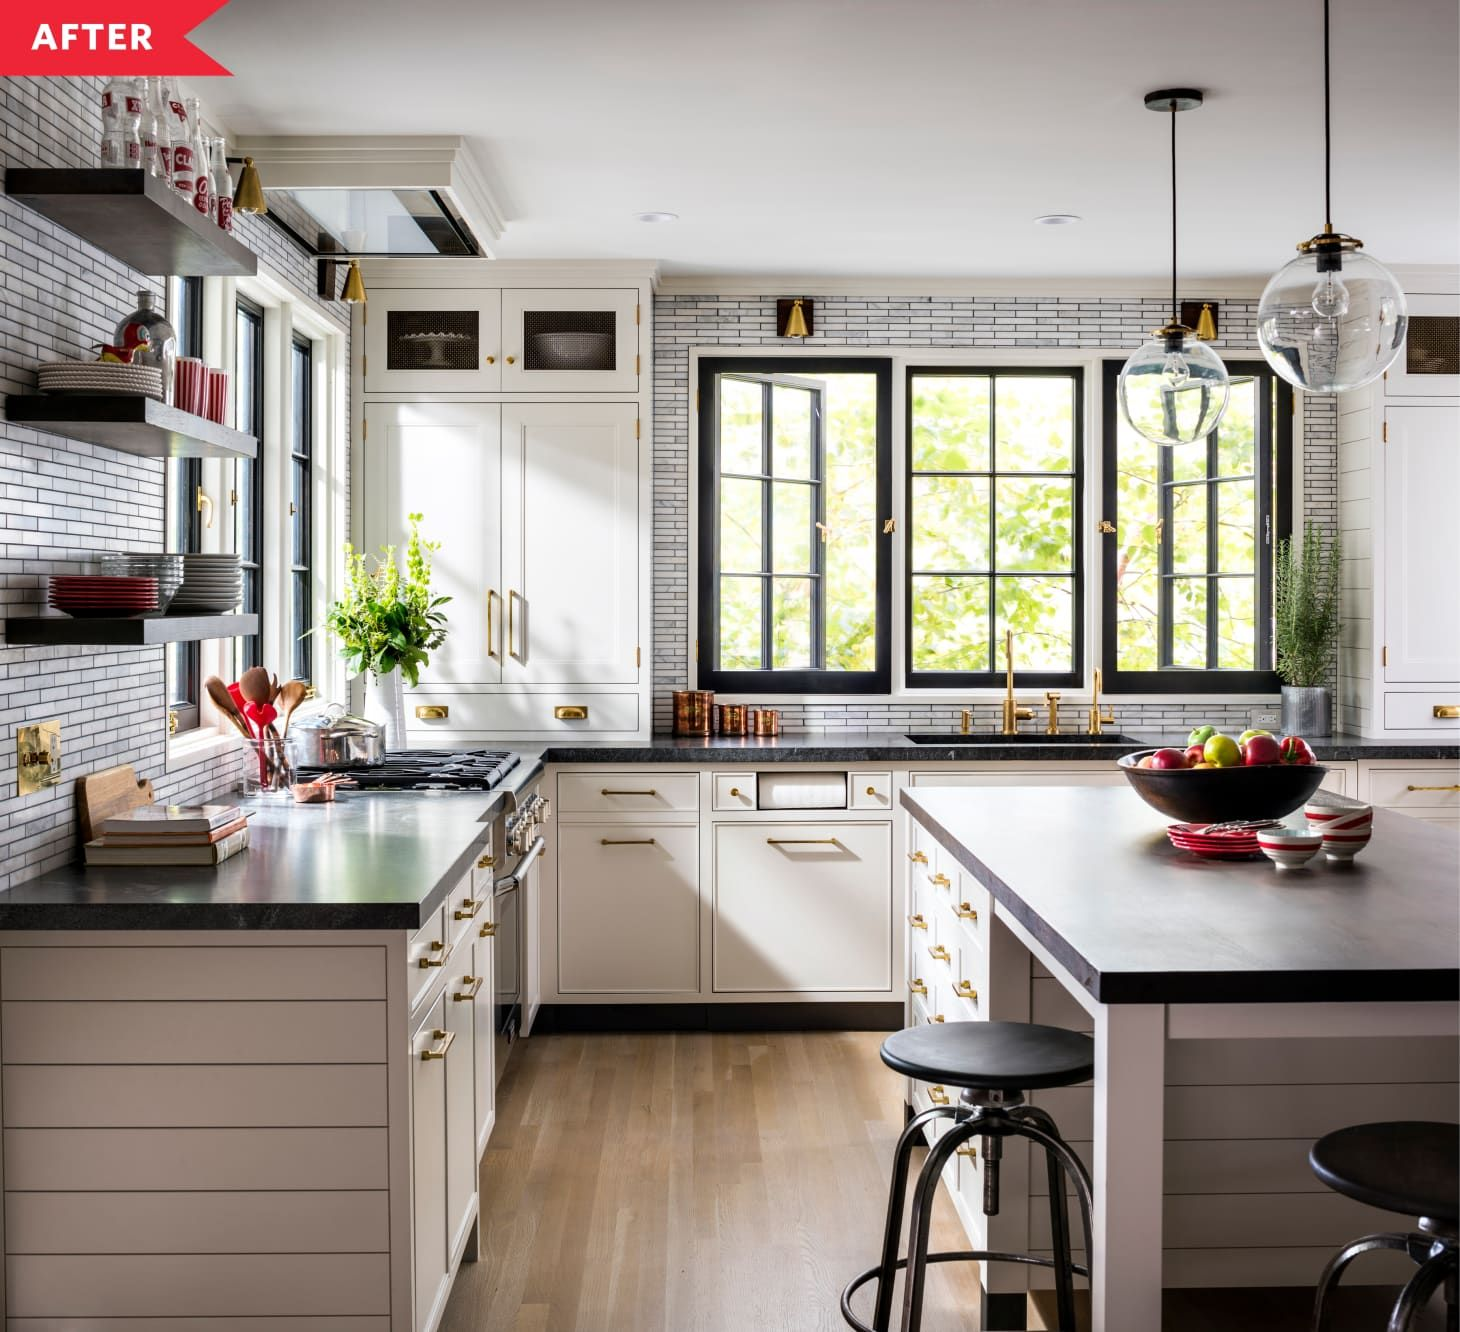 43 Extremely Creative Small Kitchen Design Ideas: This Kitchen Renovation Project Is Packed With Sneaky